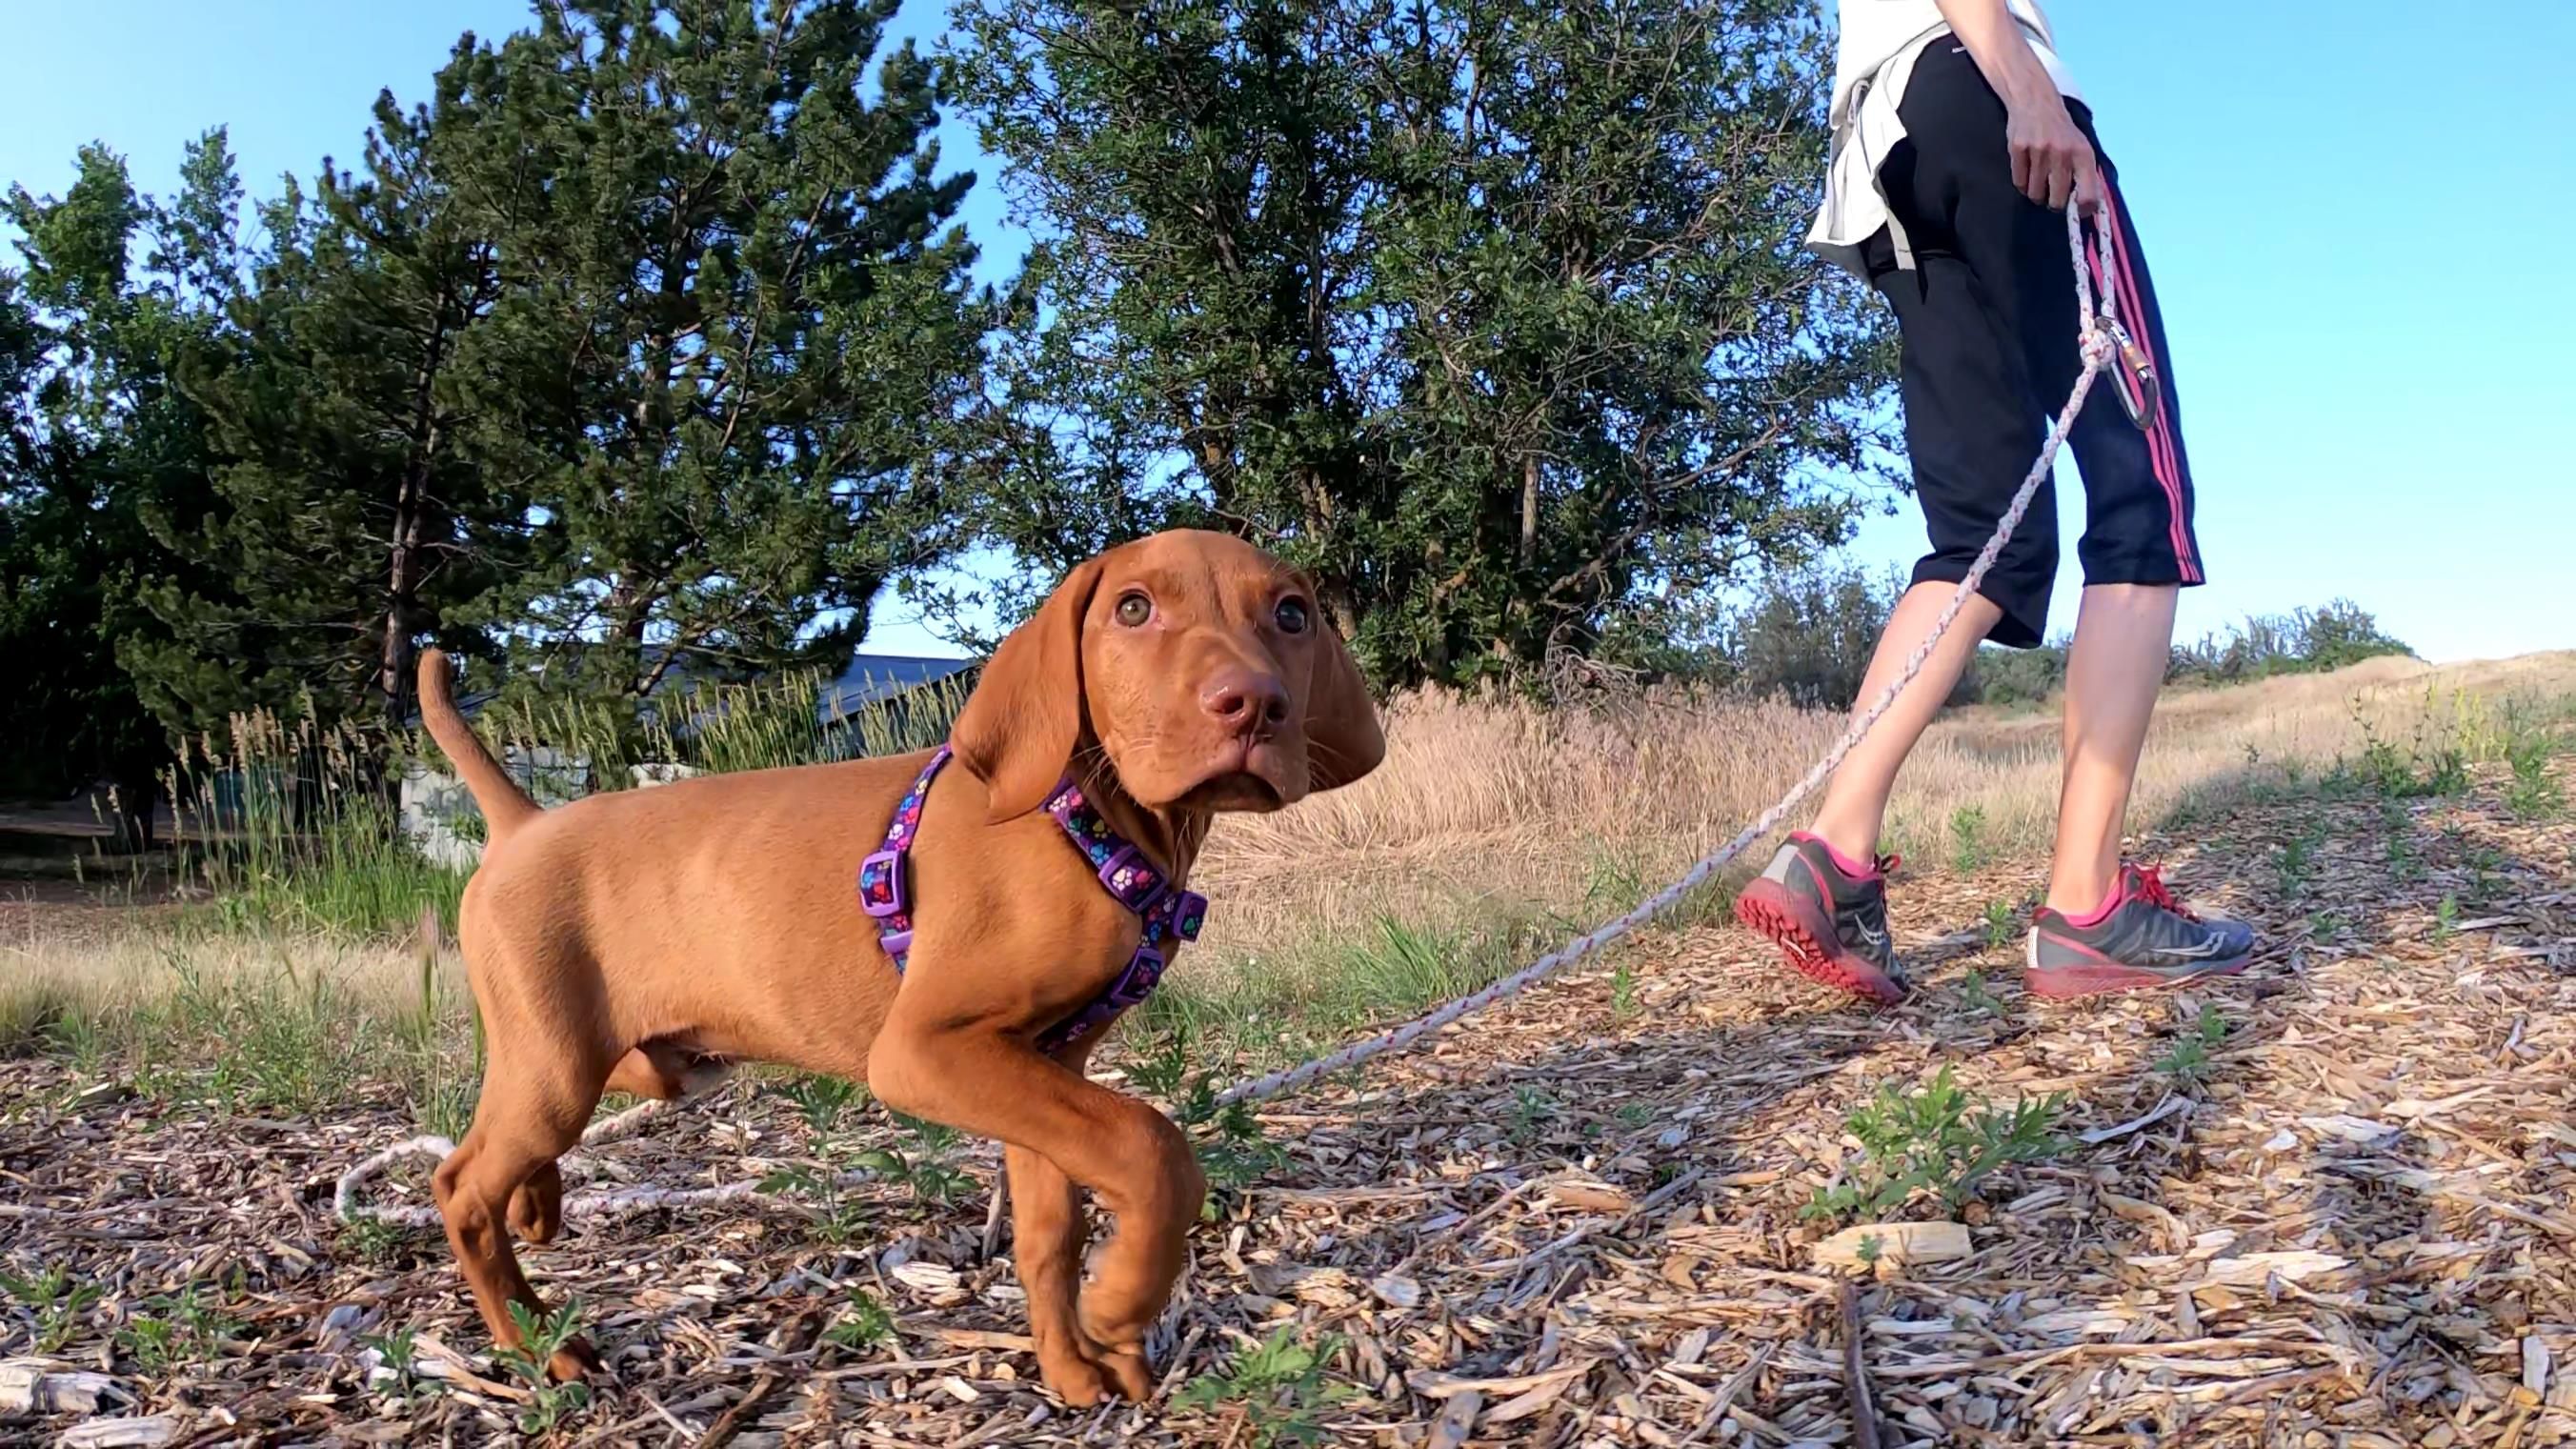 Does your puppy seem to eat everything – grass, dirt, sticks, rocks